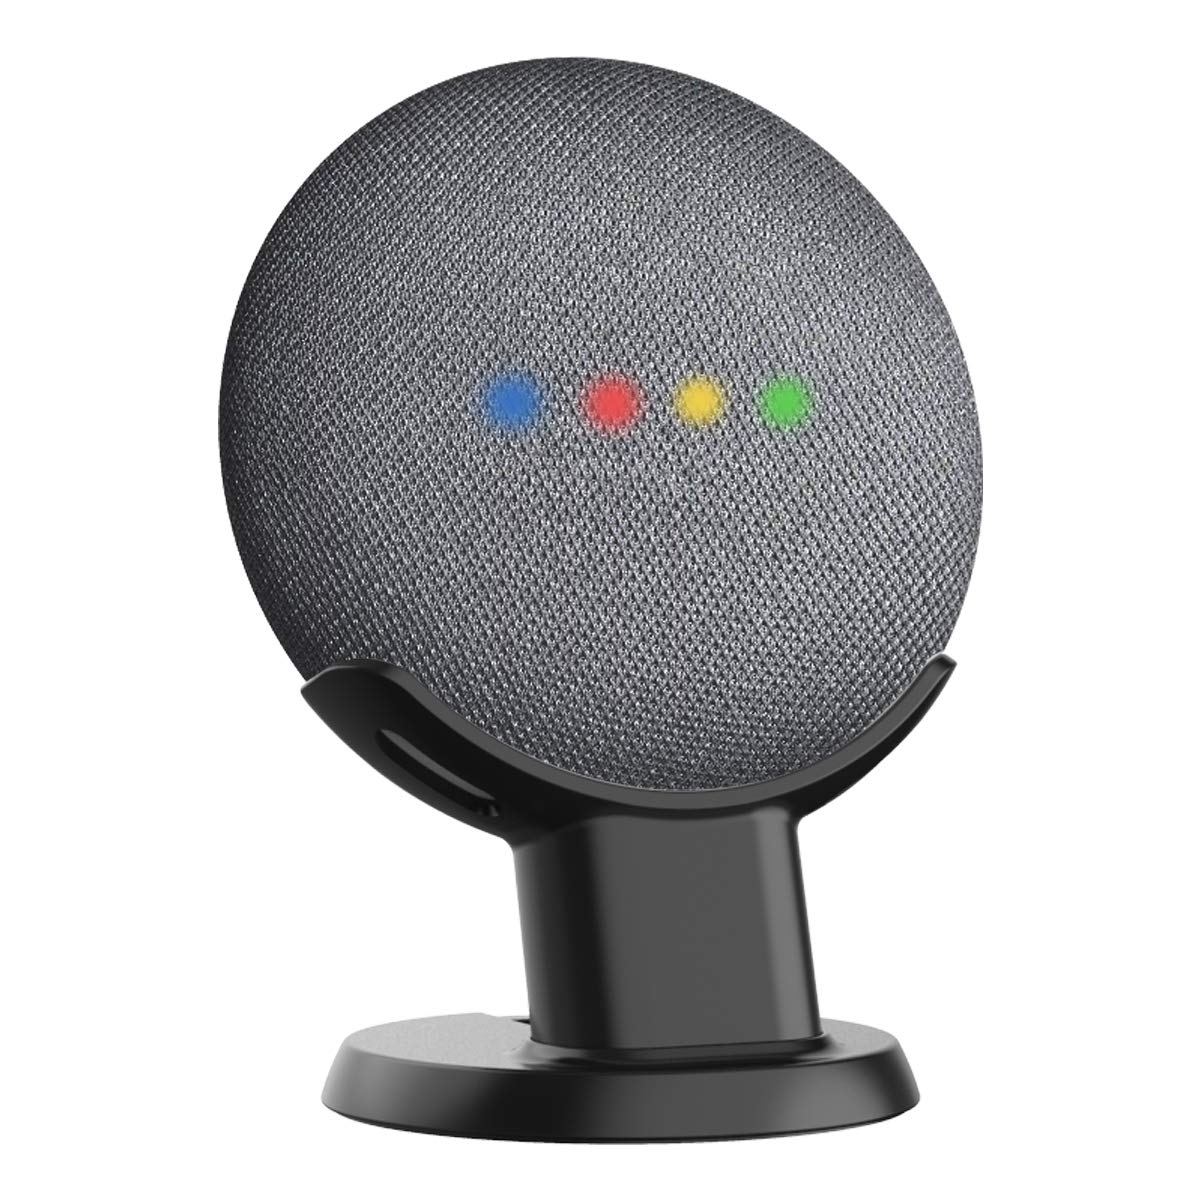 SPORTLINK Pedestal for Google Home Mini Improves Sound Visibility and Appearance - A Must Have Mount Holder Stand for Google Mini (Black)